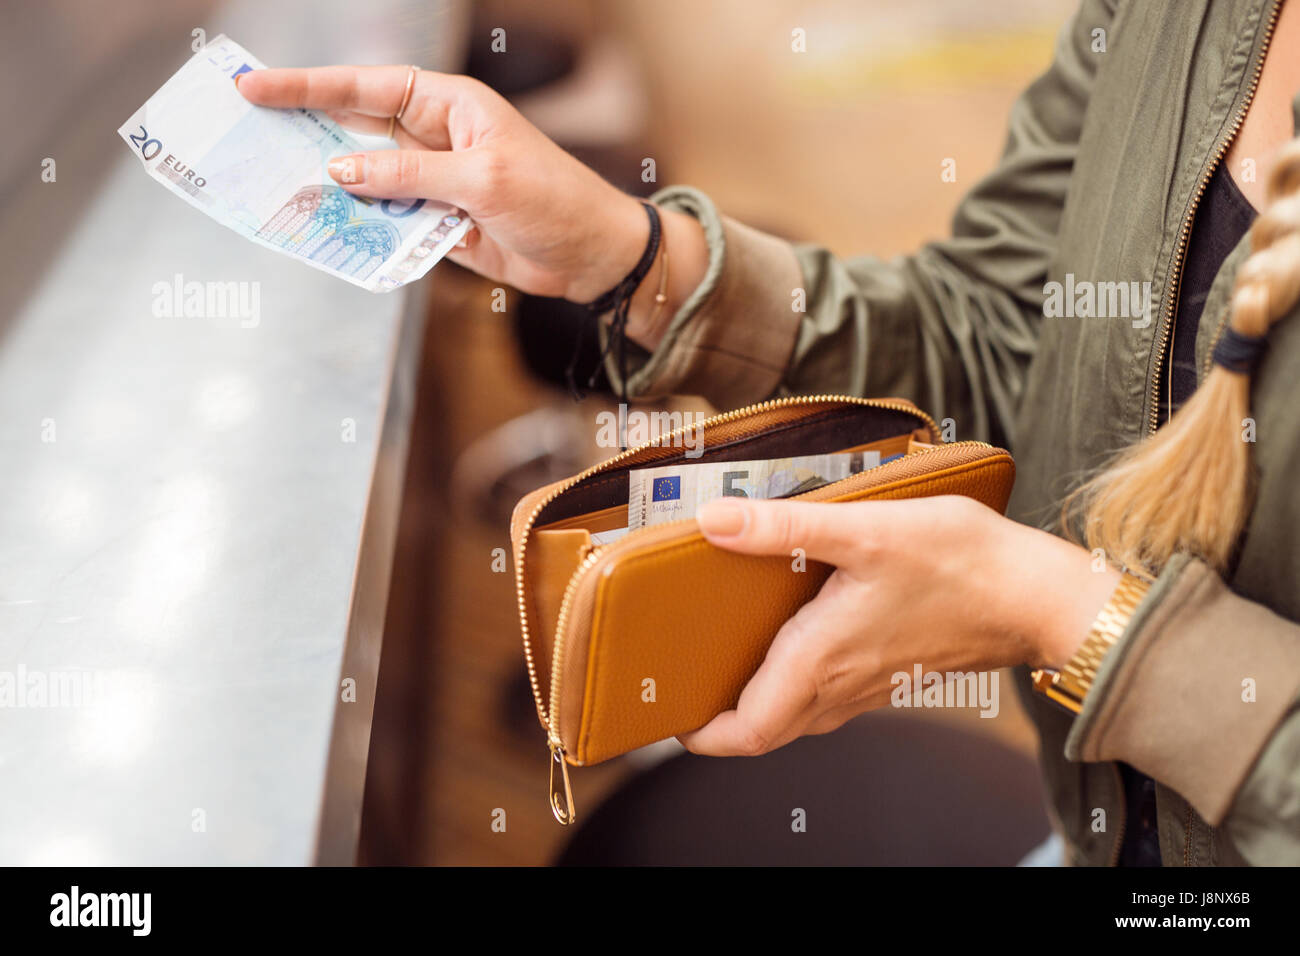 Woman paying with cash at bar Stock Photo